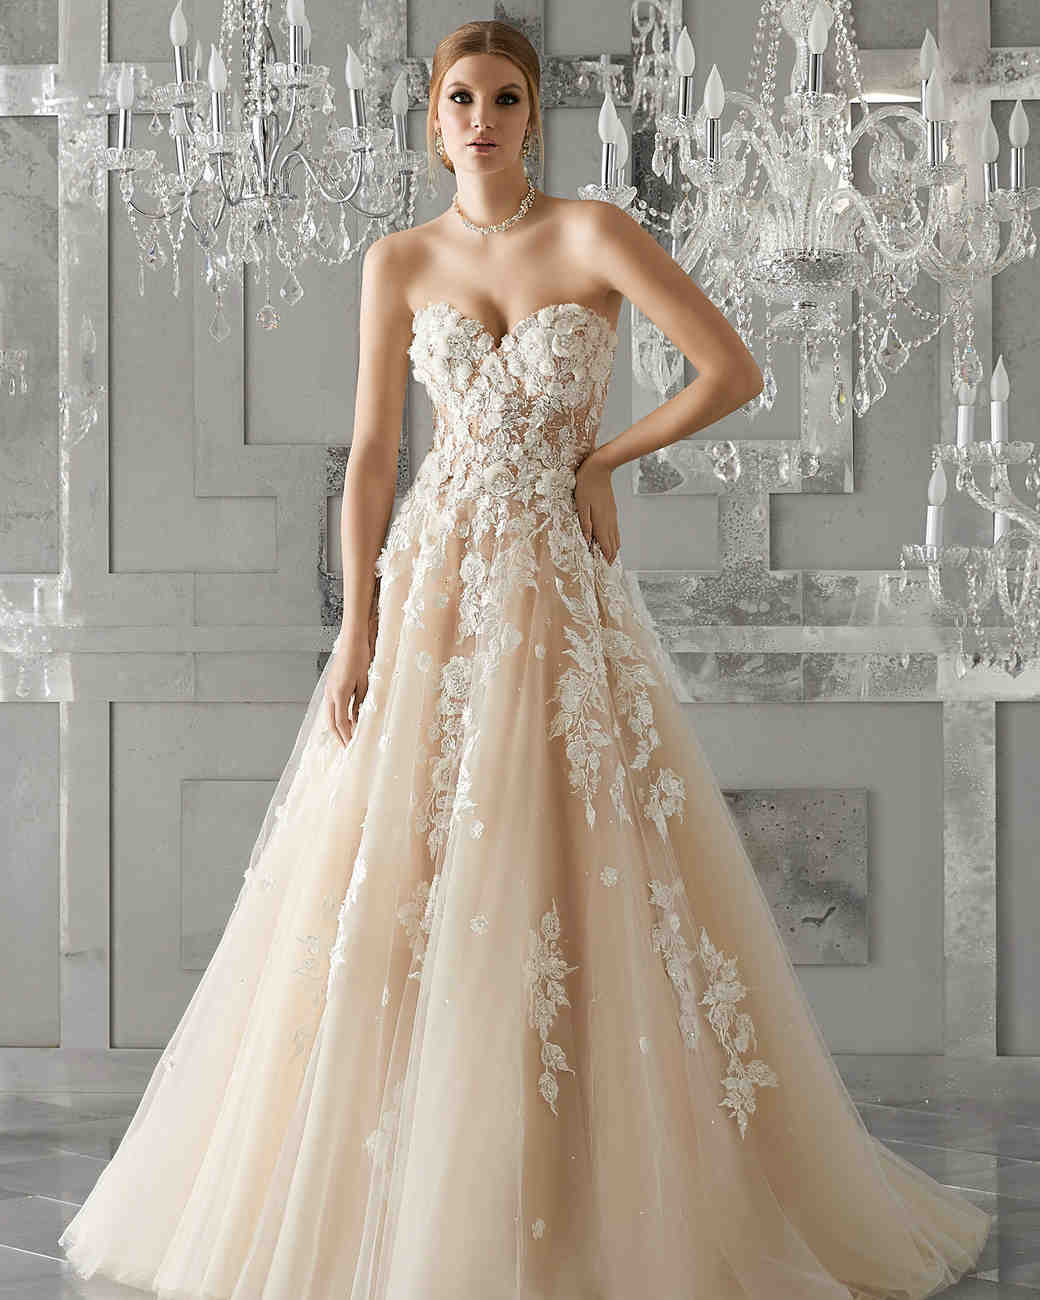 The 9 Fall 2018 Wedding Dress Trends Brides Need To Know ...